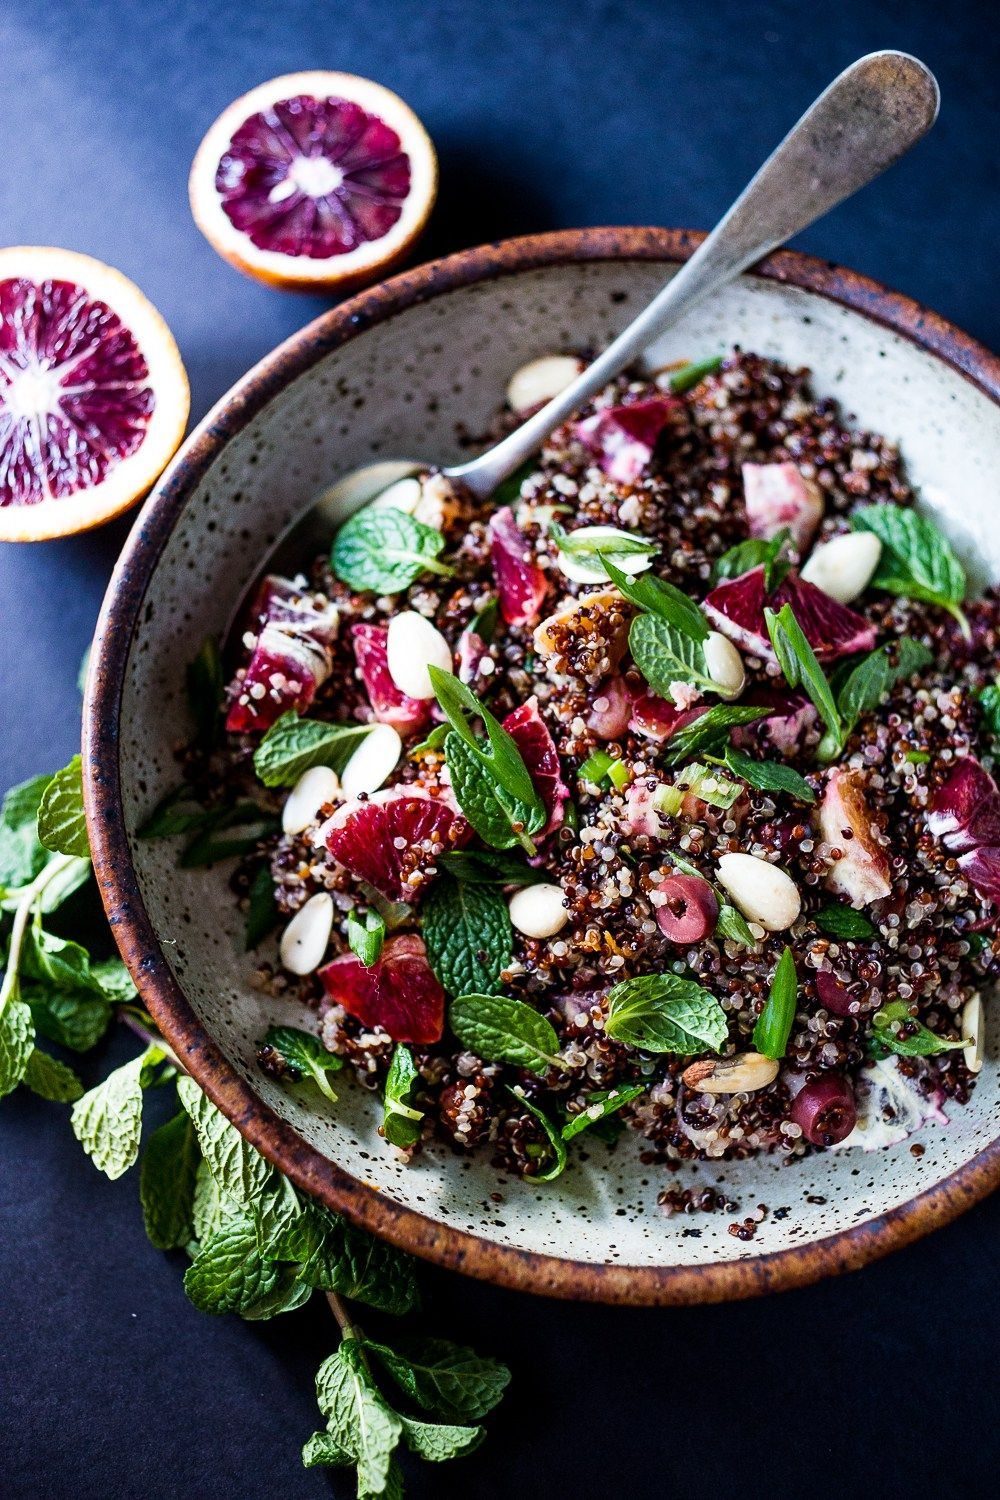 Moroccan Salad with Blood Oranges, Quinoa, Olives,